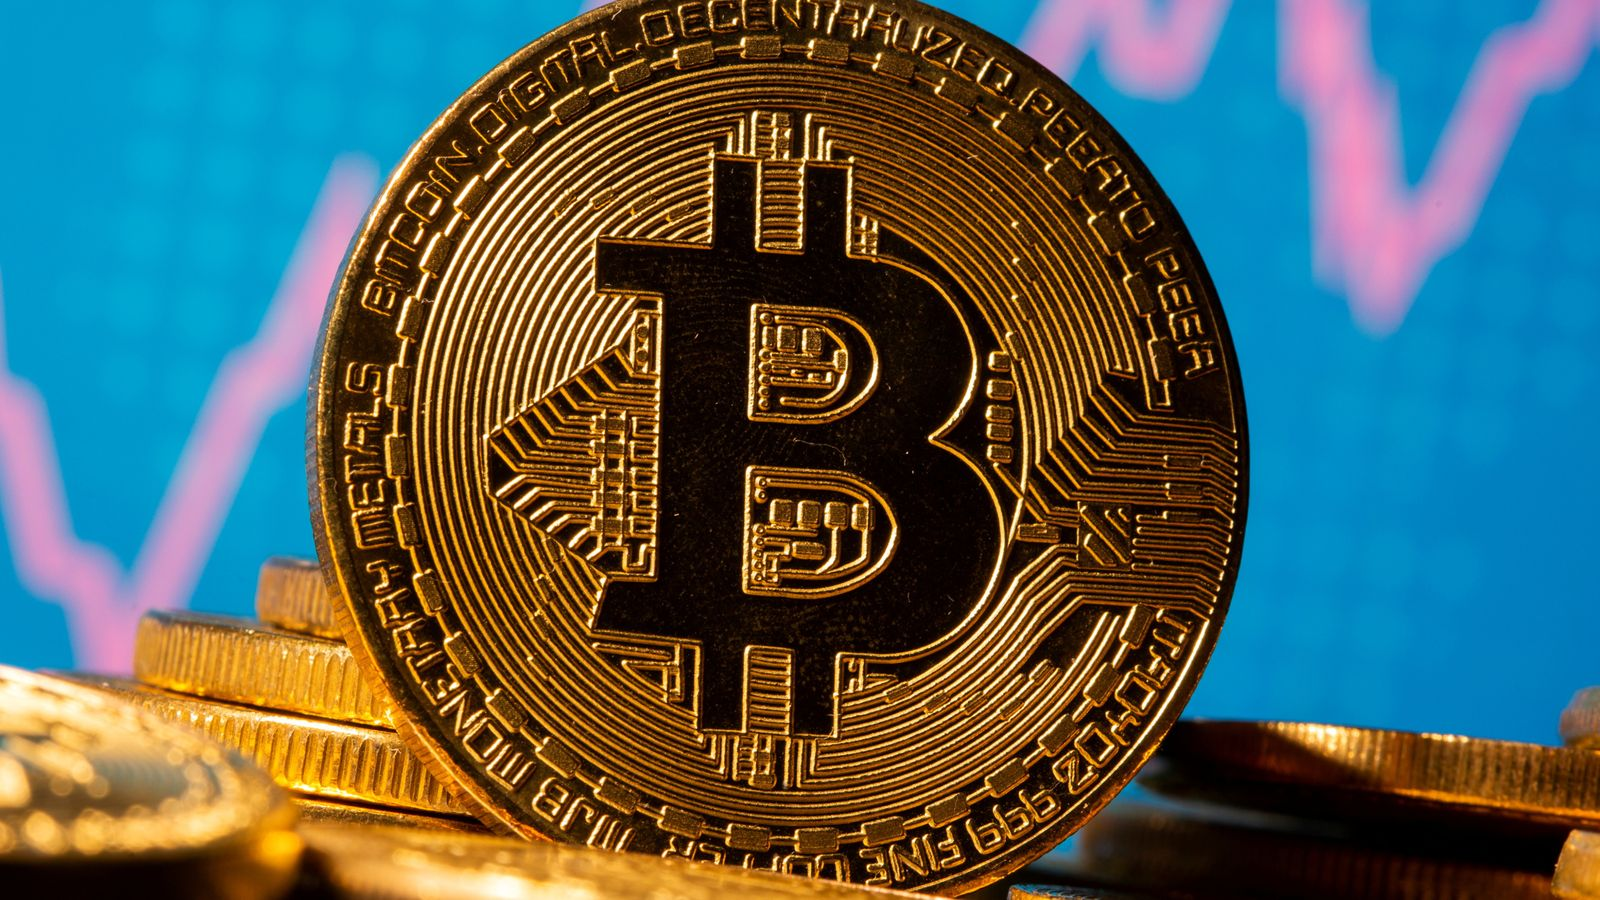 Bitcoin suddenly plunges 20% – wiping $10,000 off the value of a single coin